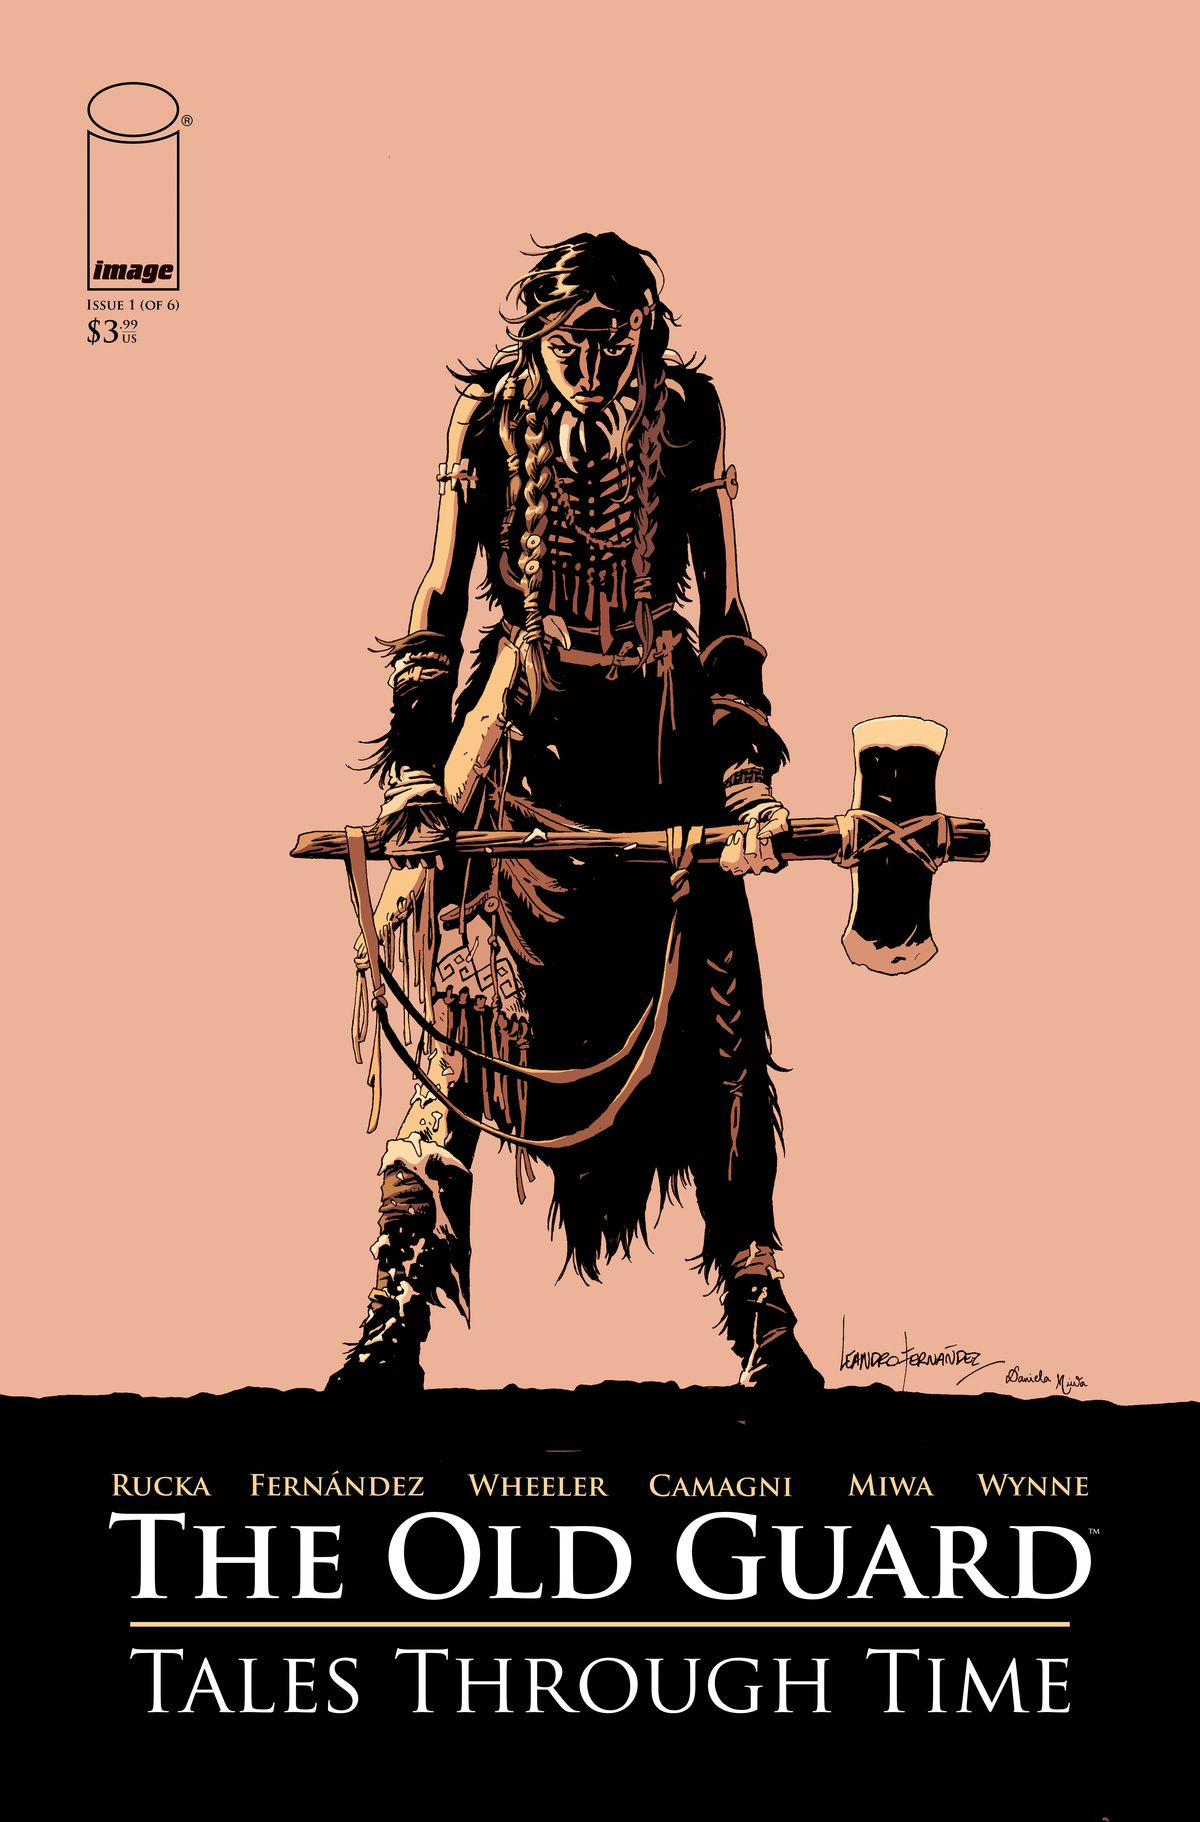 The Old Guard: Tales Through Time issue #1 cover - A woman in animals skin clothing holds a wooden axe